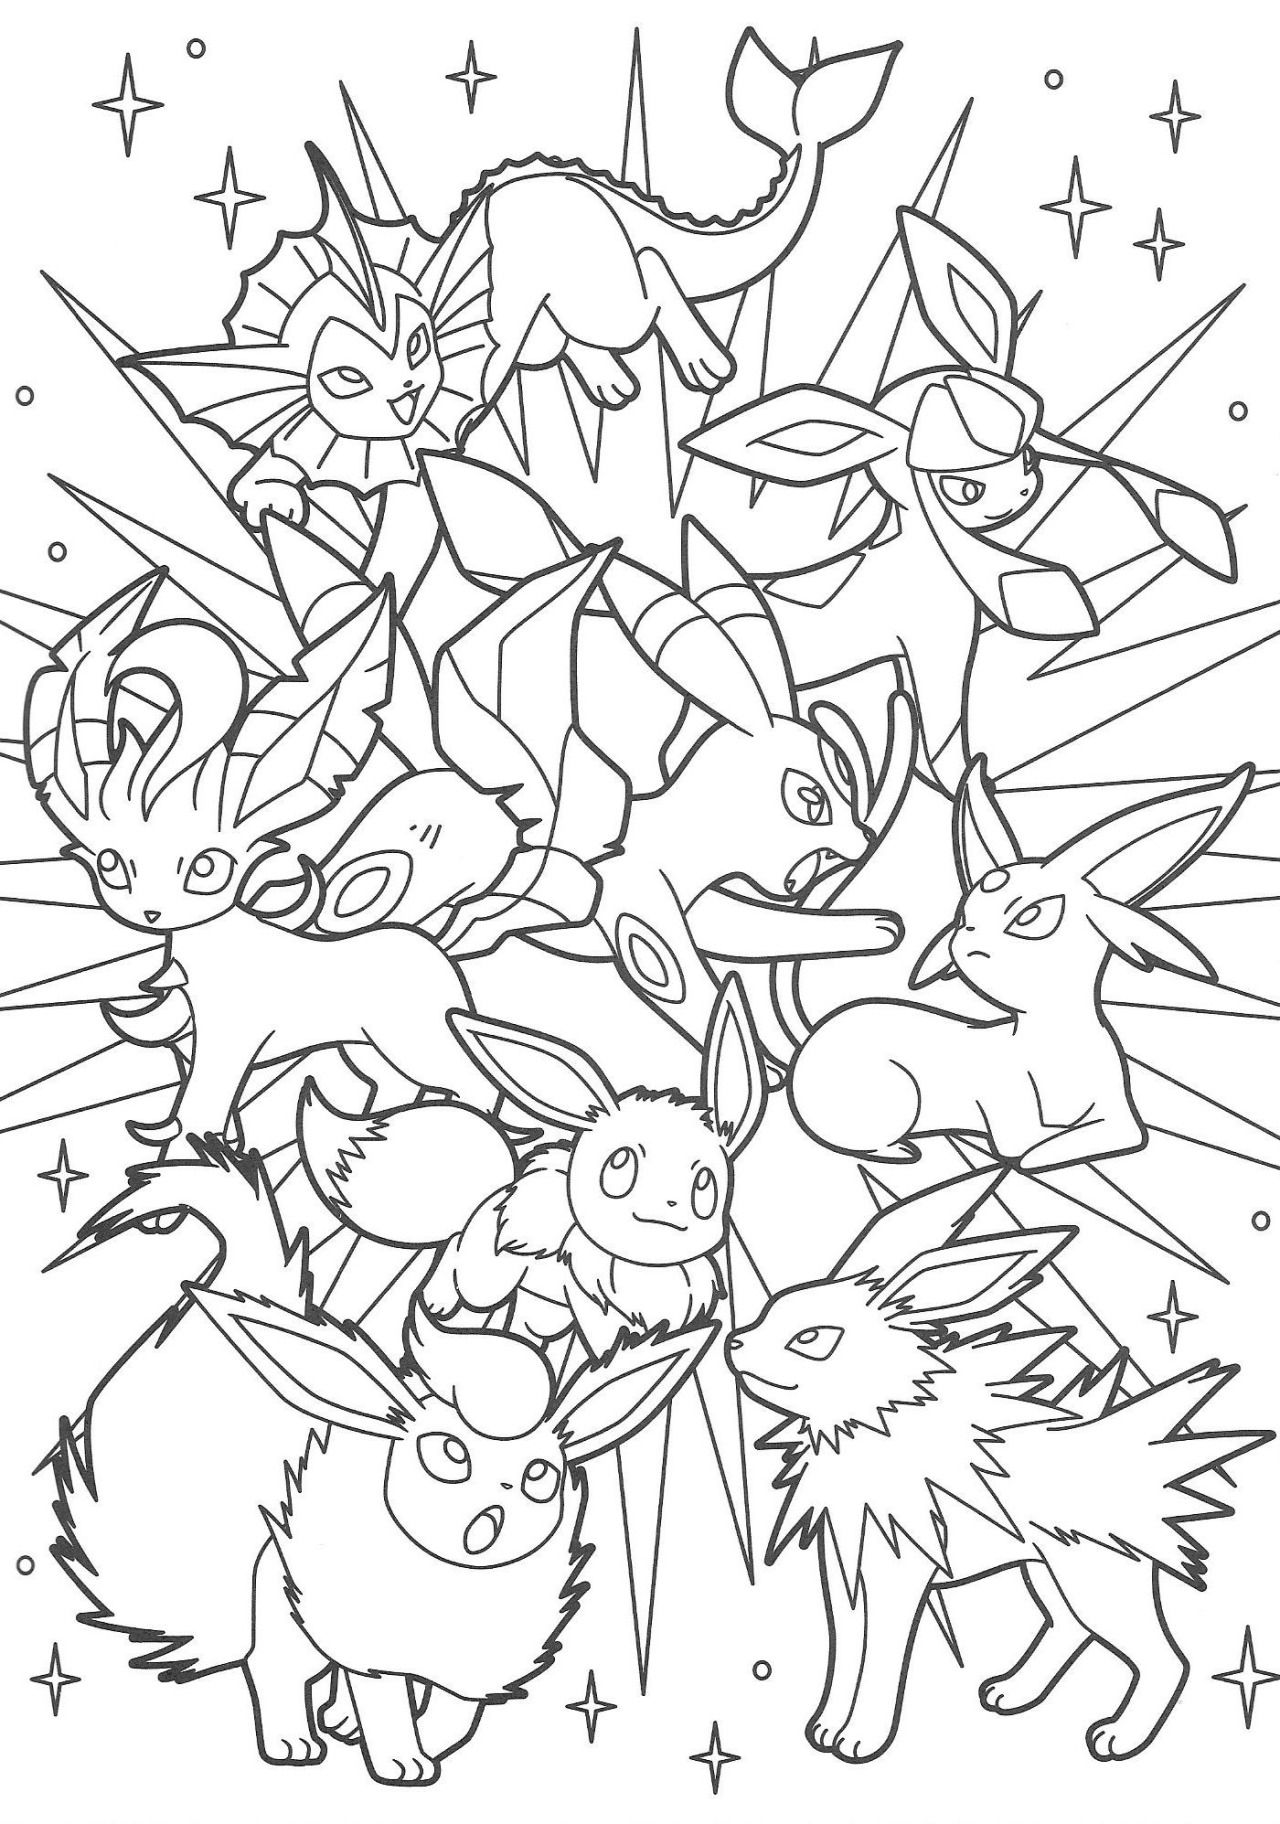 Pokescans Pokemon Coloring Sheets Pikachu Coloring Page Pokemon Coloring